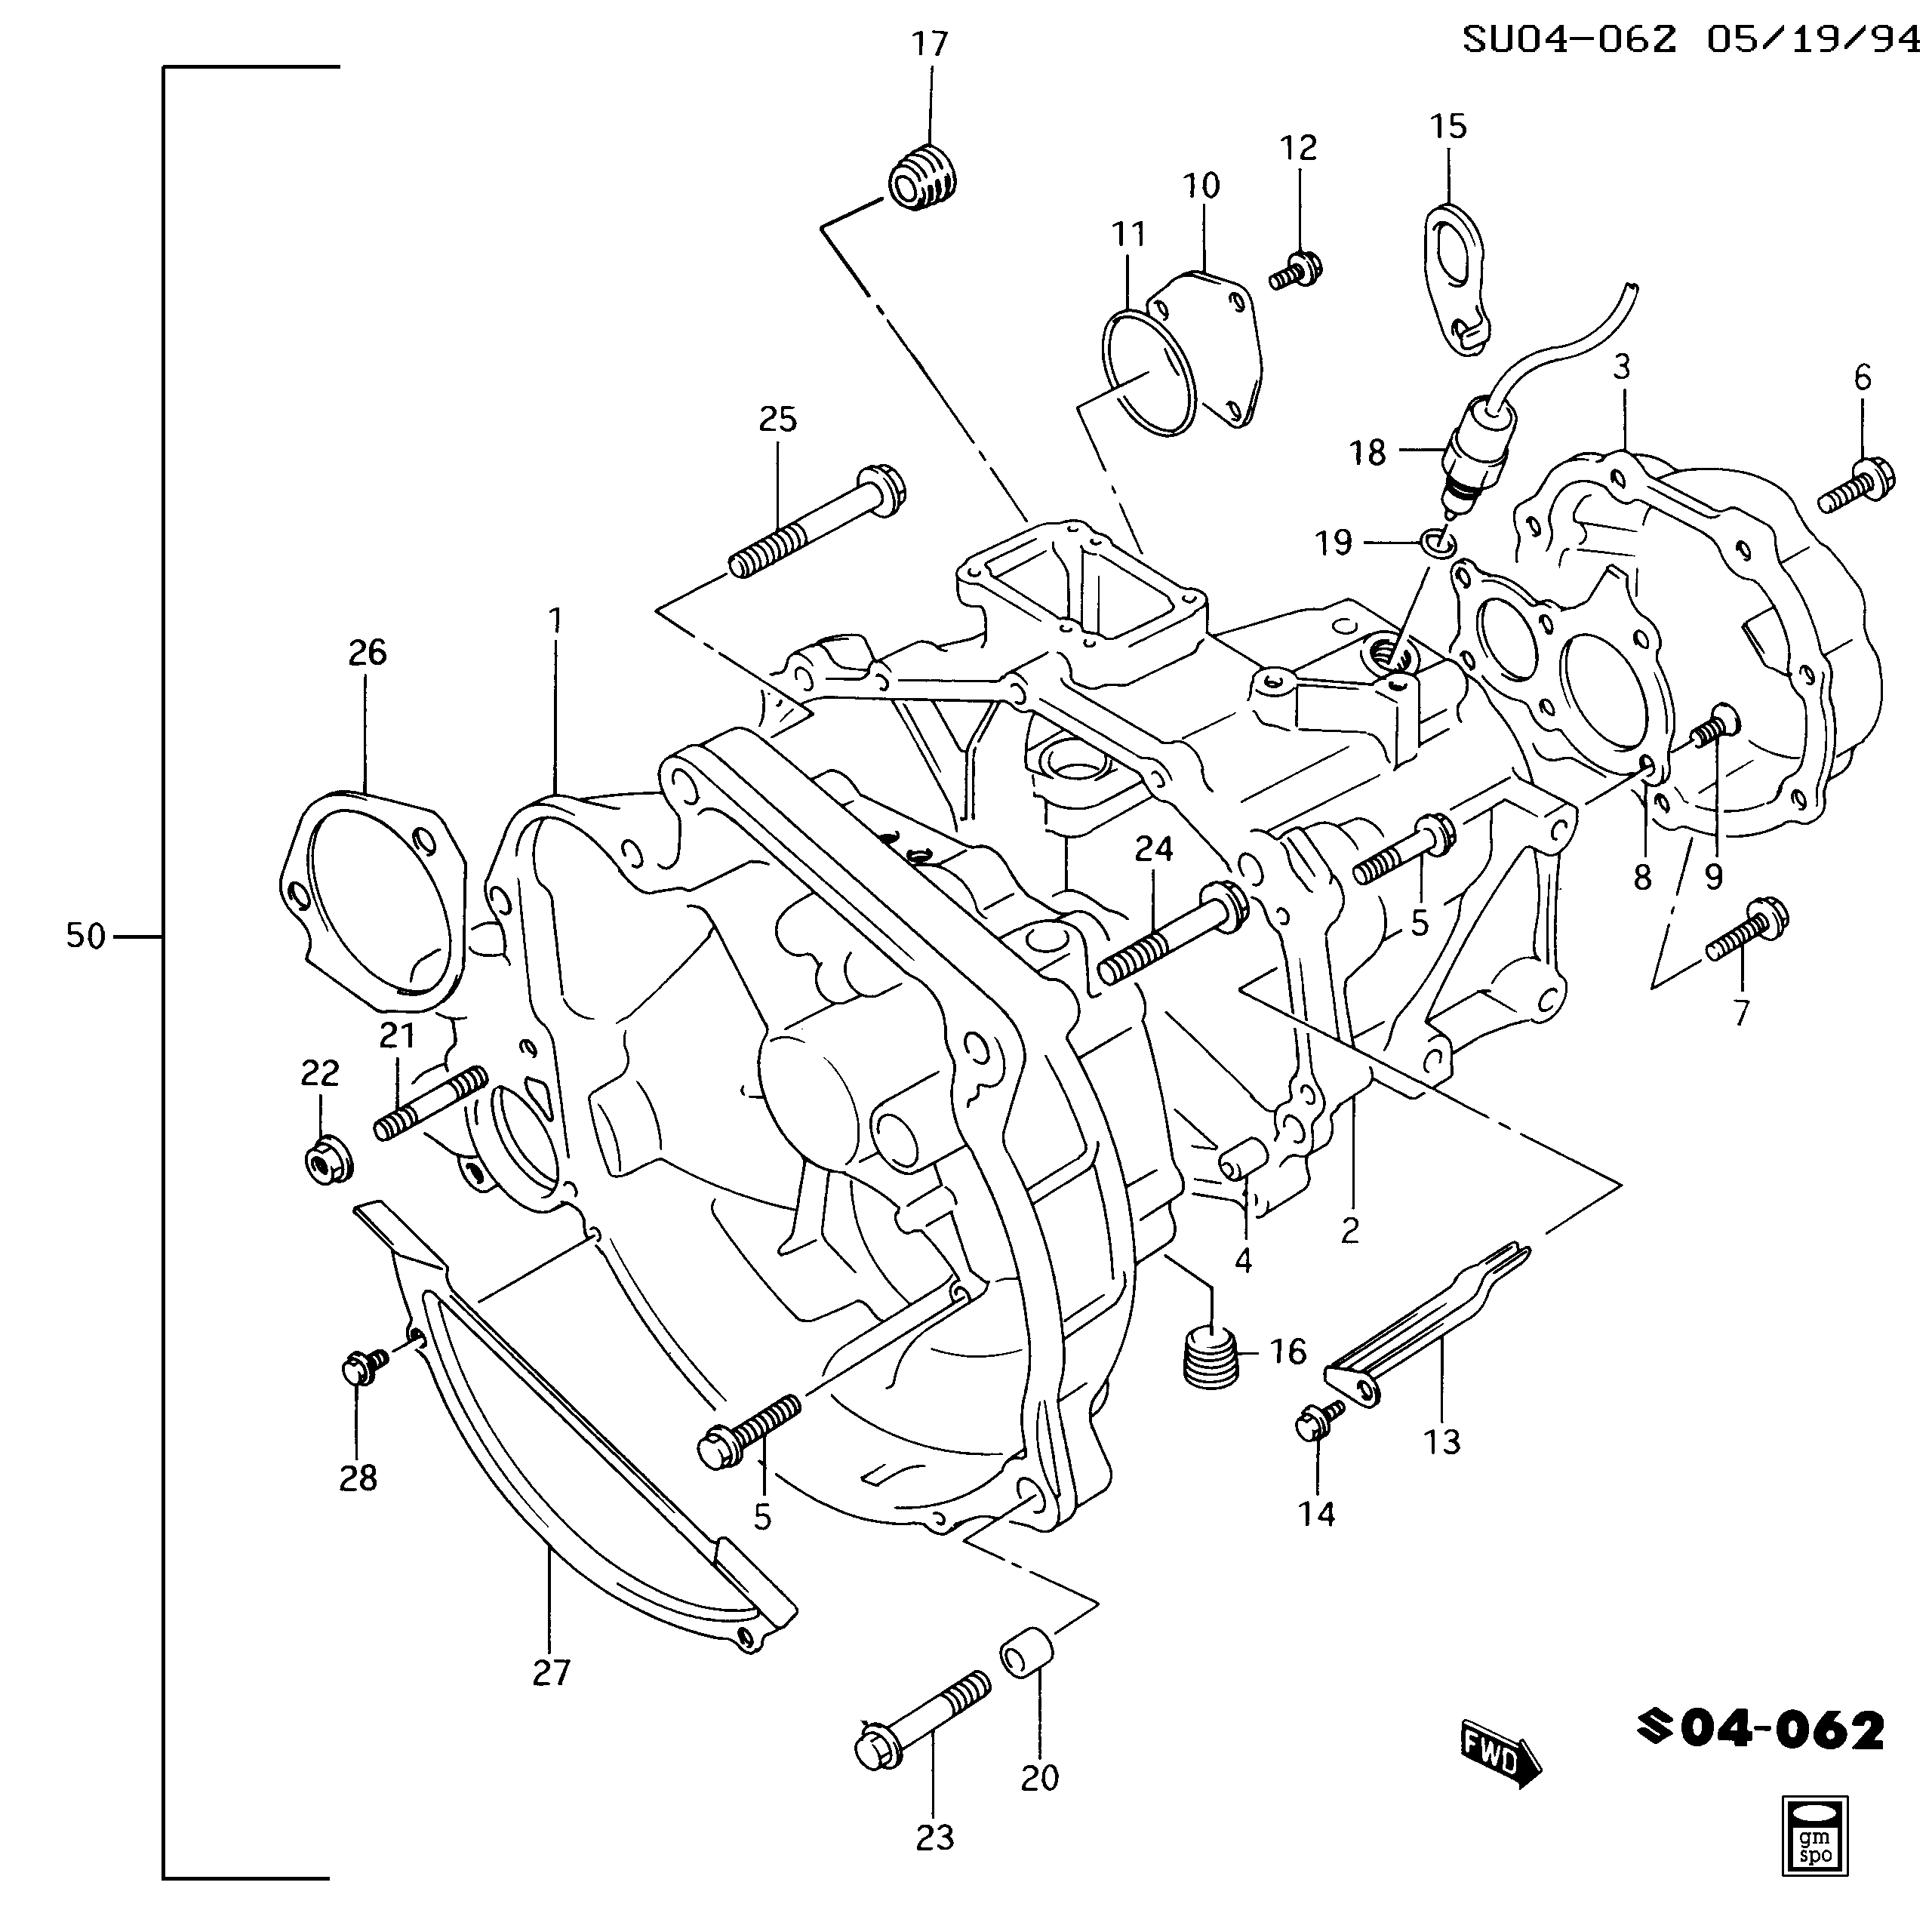 geo metro 3 cylinder engines diagram 4 5 asyaunited de u2022 rh 4 5 asyaunited de 94 Chevy Lumina Engine Diagram Chevy V6 Engine Diagram